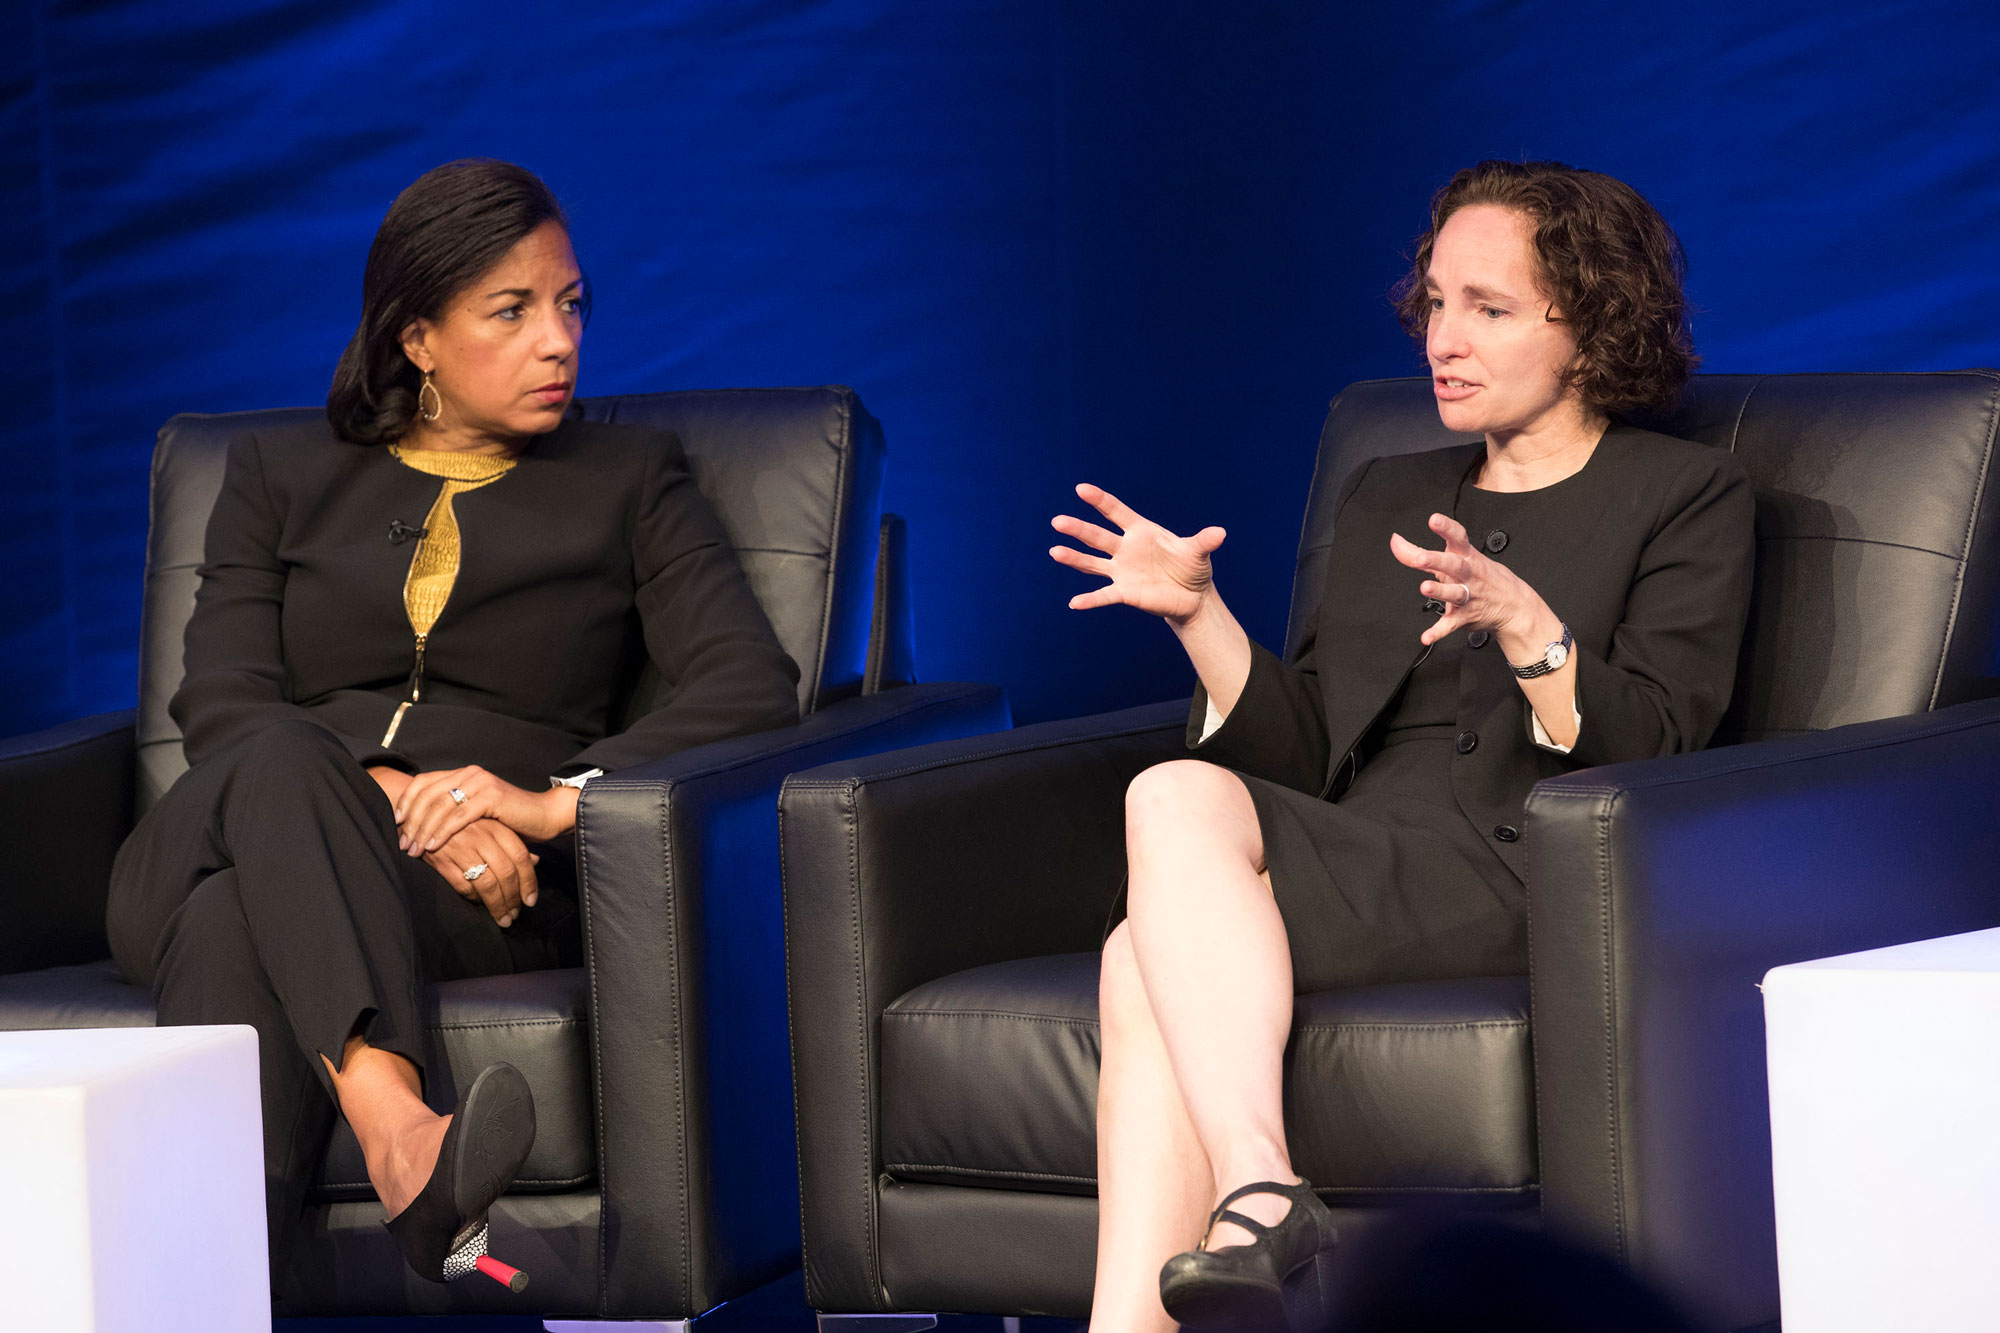 Susan Rice, left, drew on firsthand experience in the White House while School of Law Dean Risa Goluboff offered perspective from her expertise in constitutional law. (Photo by Dan Addison, University Communications)